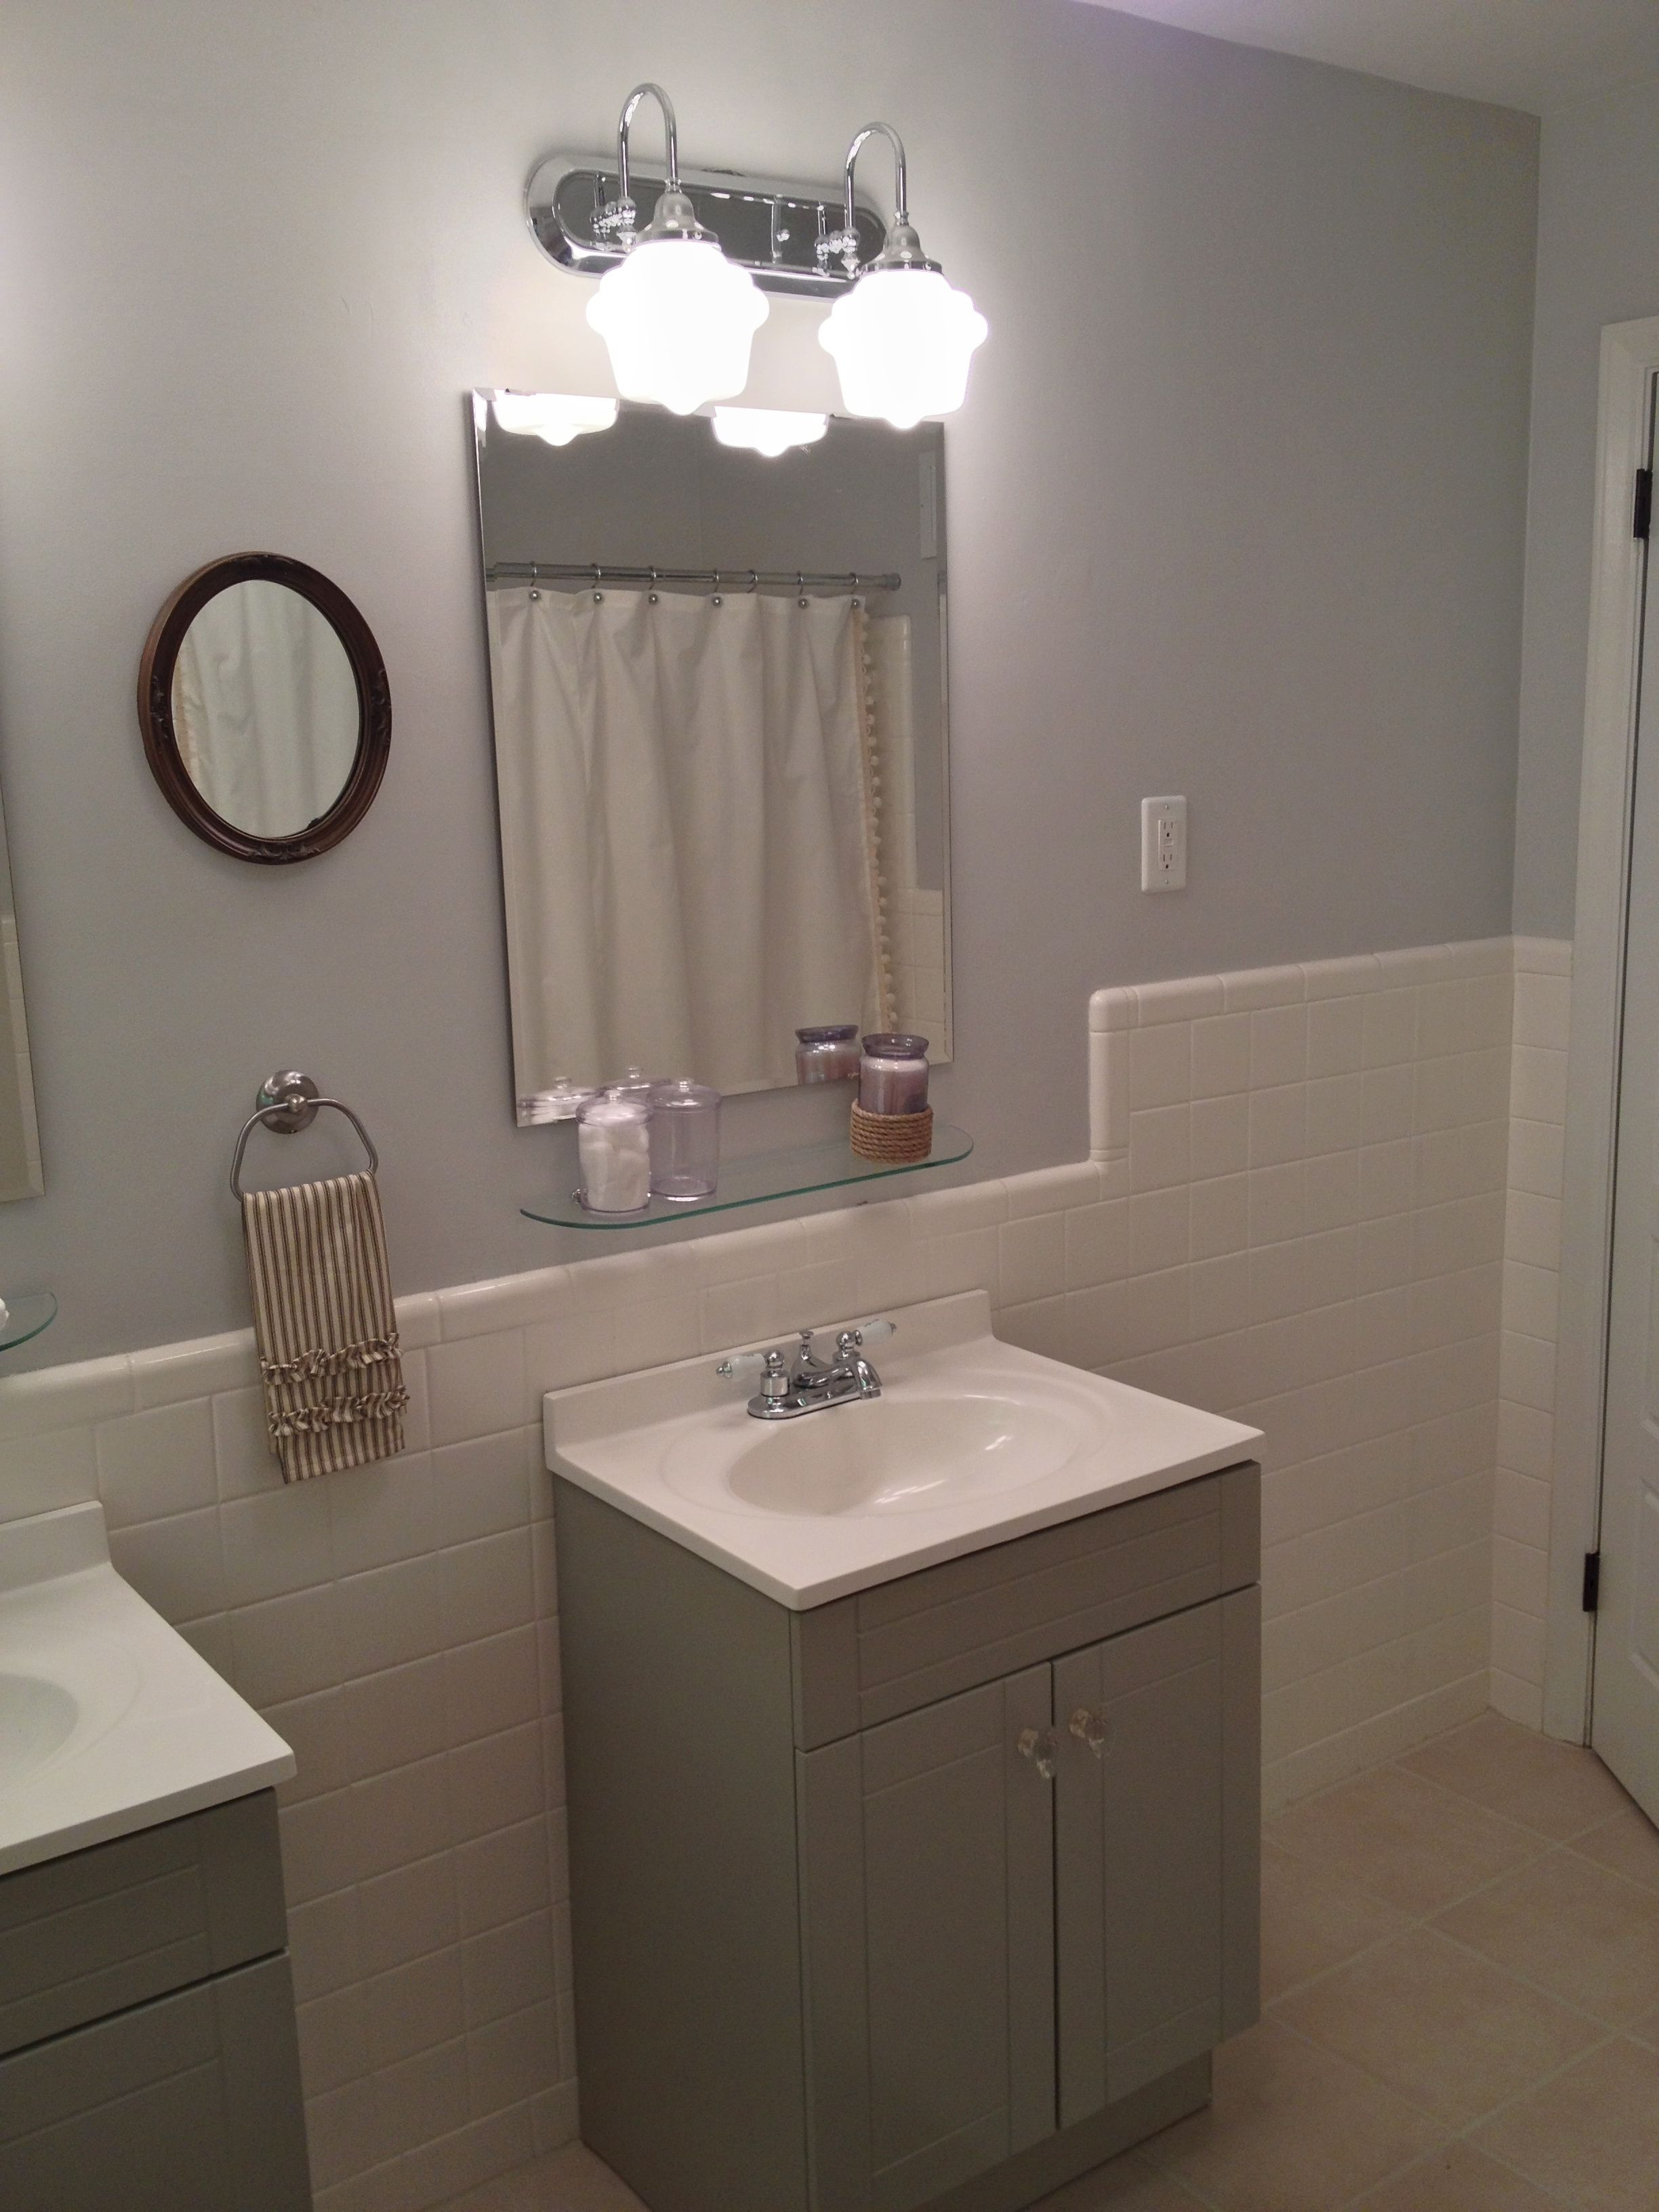 New 20 Bathroom Light Fixtures With Pull Chain Decorating ...